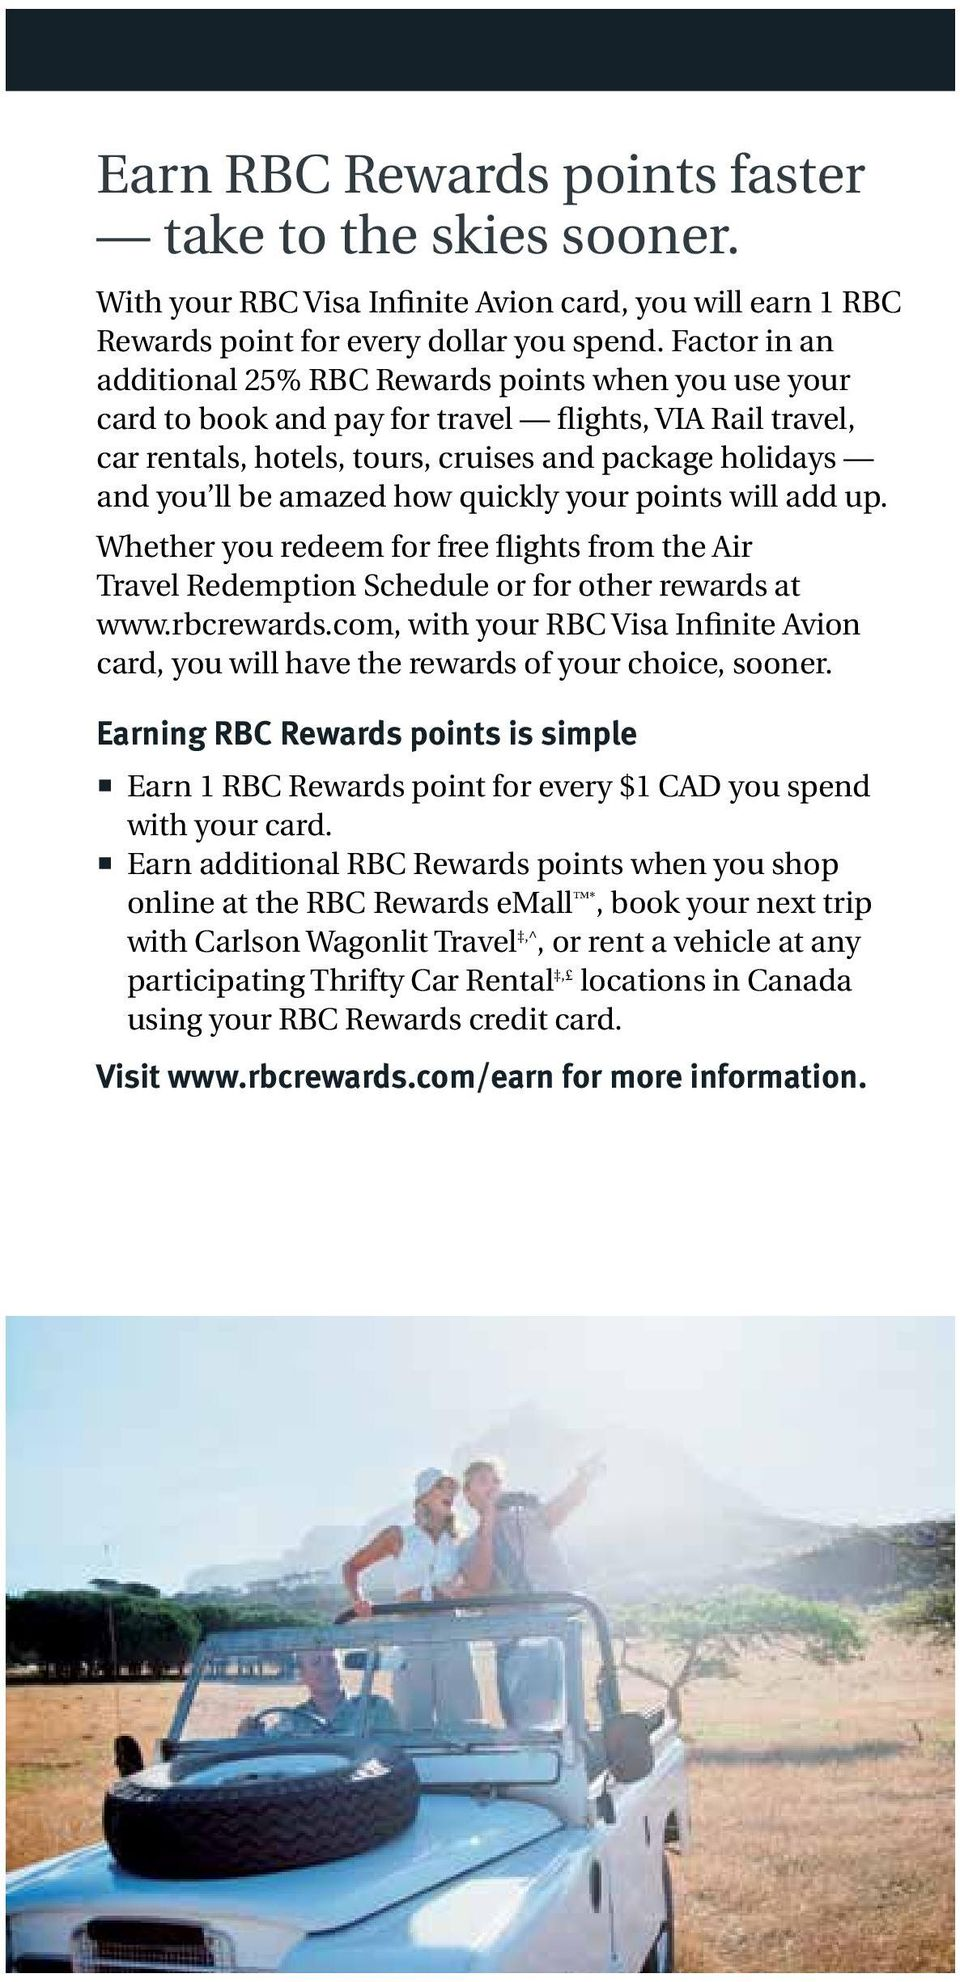 amazed how quickly your points will add up. Whether you redeem for free flights from the Air Travel Redemption Schedule or for other rewards at www.rbcrewards.